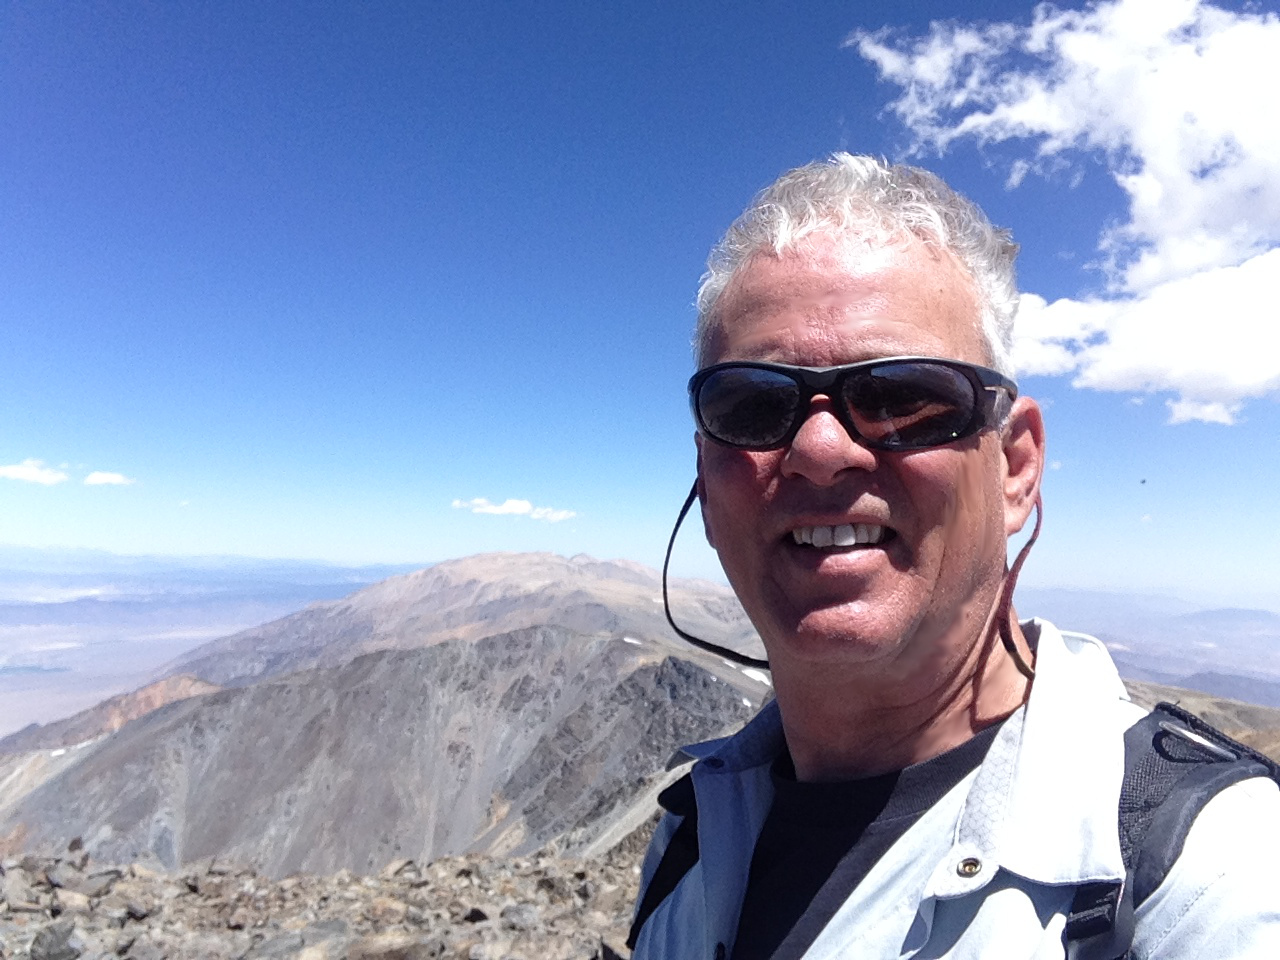 Glen MacDonald on summit of White Mountain, California 14,252 ft